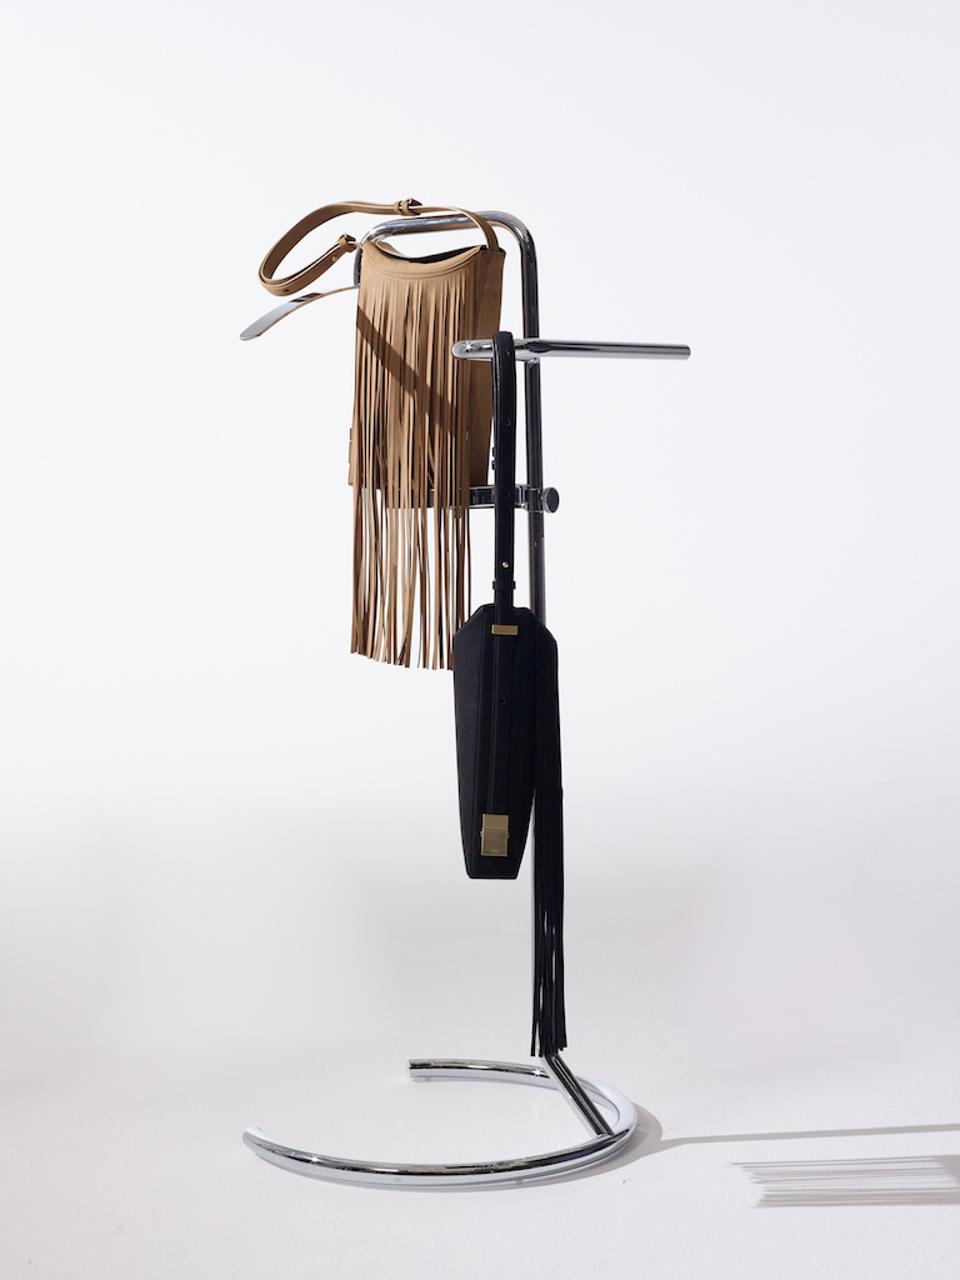 Fringe Lunch bags by OSOI